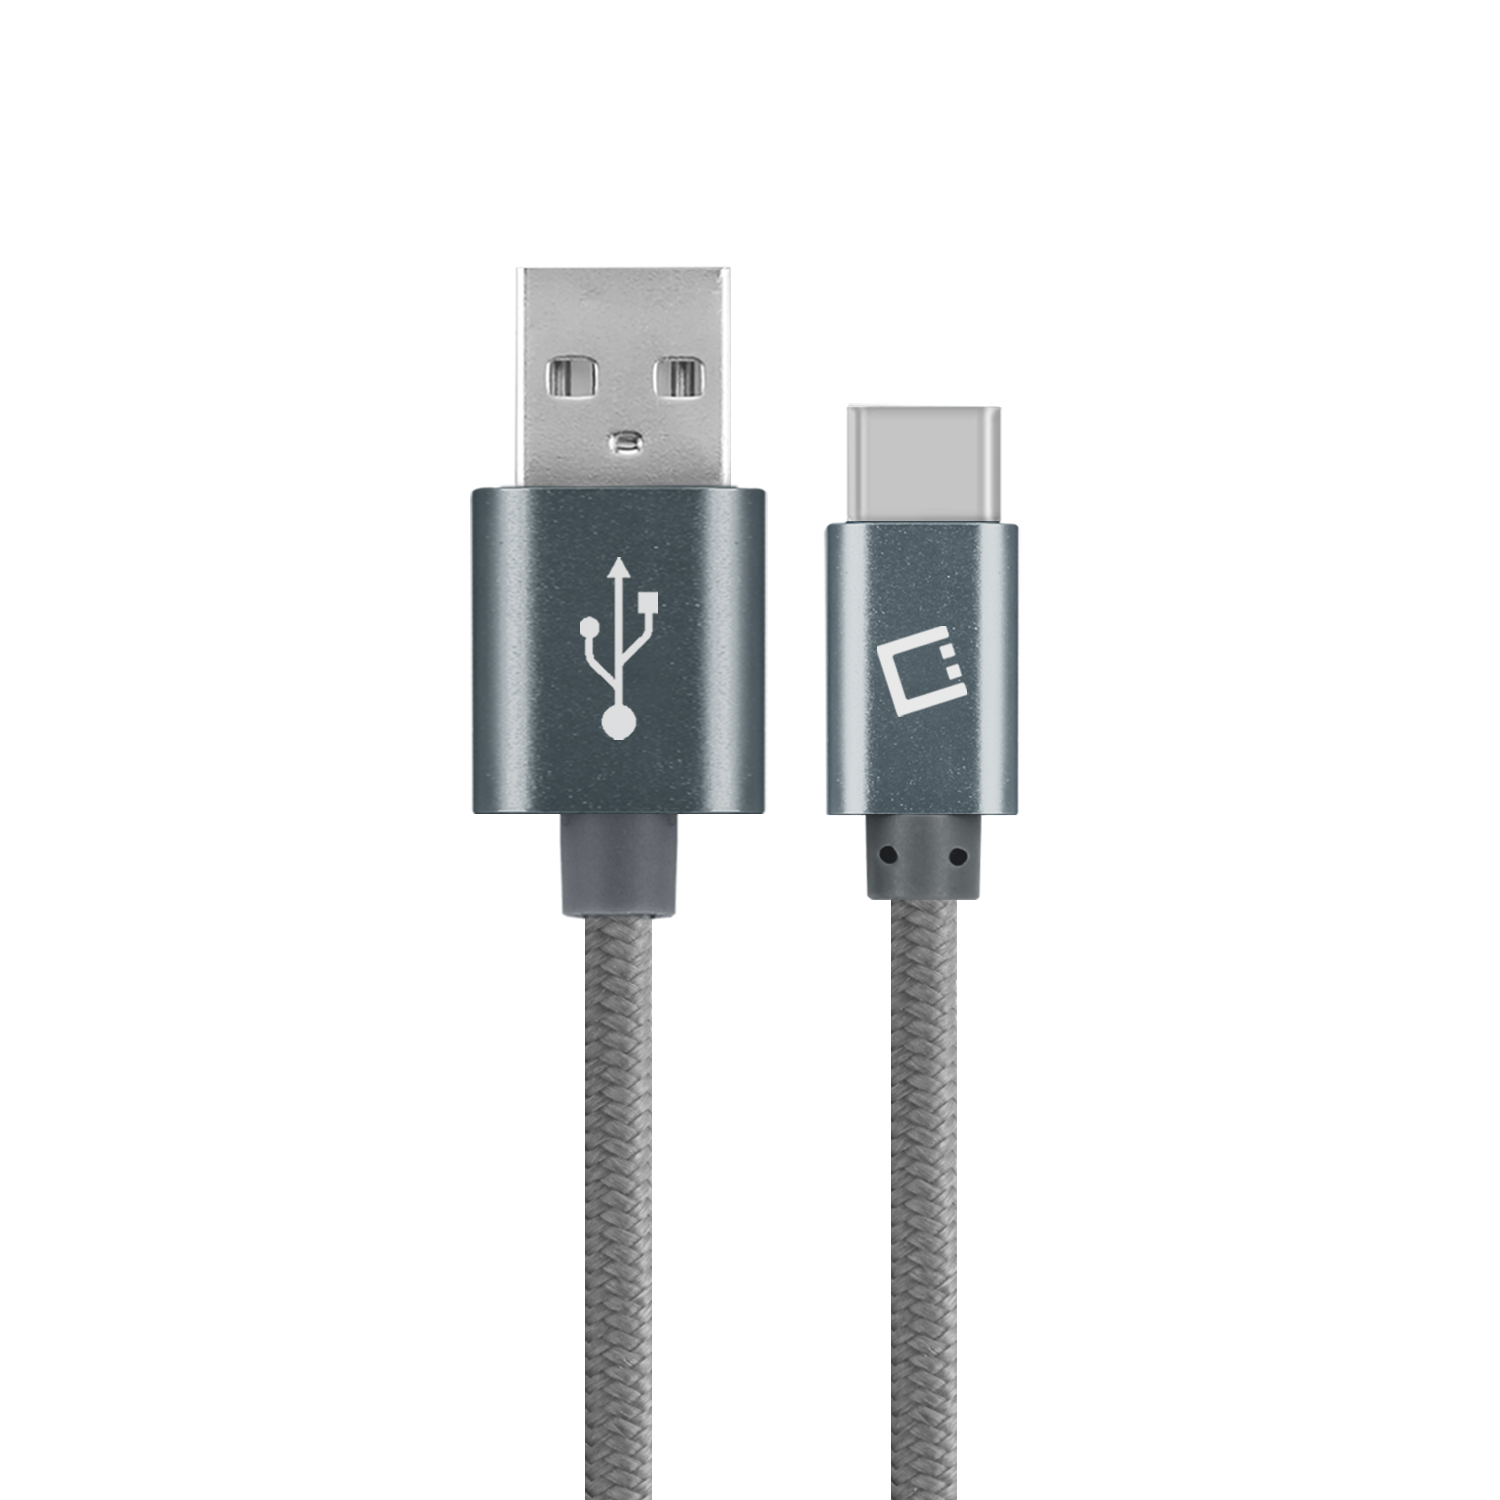 Sony Xperia X Compact USB Type-C To Type-A Braided Data Power Cable Grey 10ft Braided